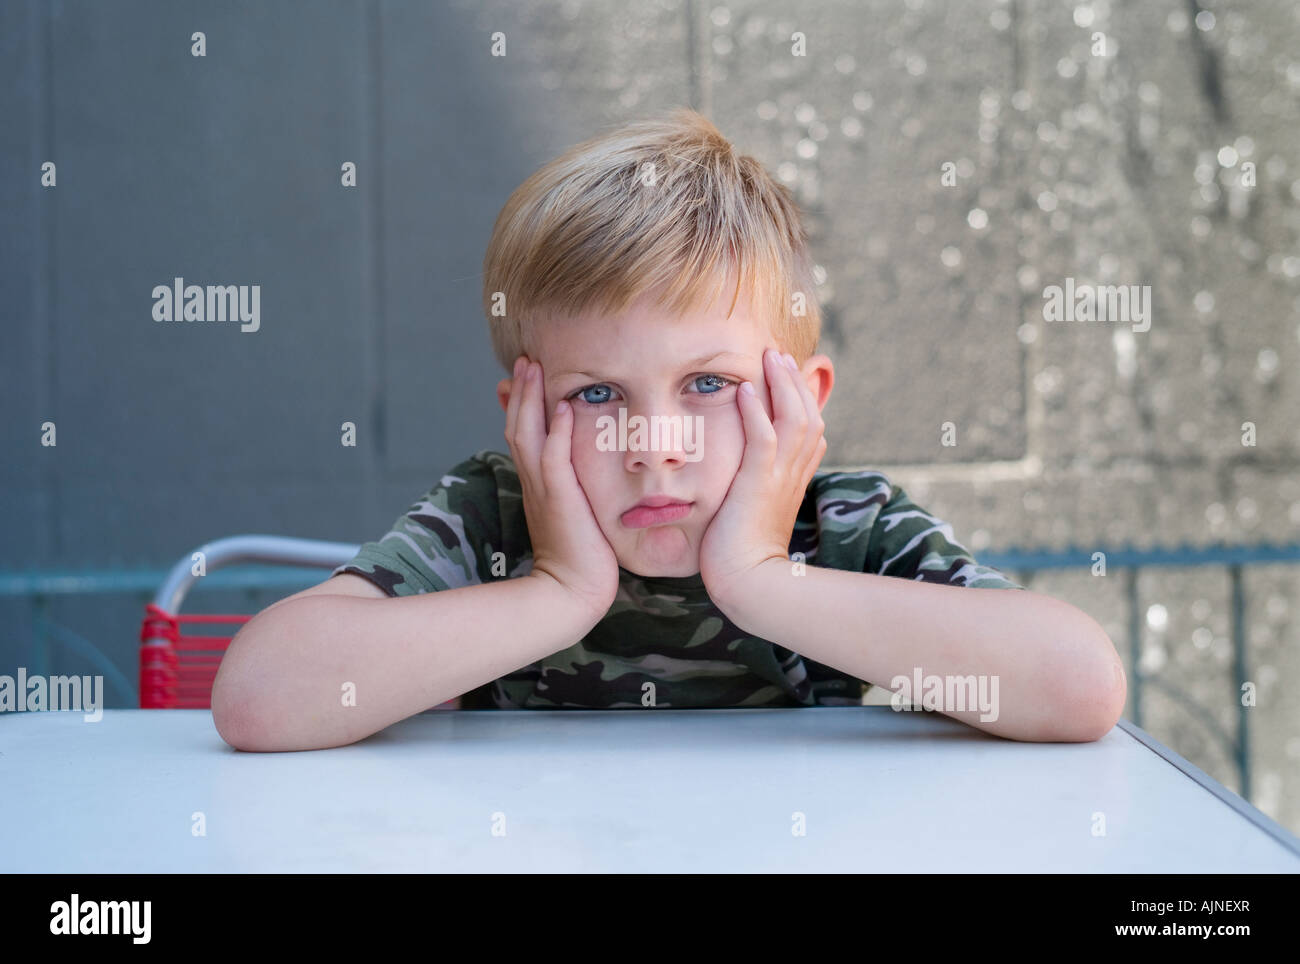 Bored or serious small boy - Stock Image